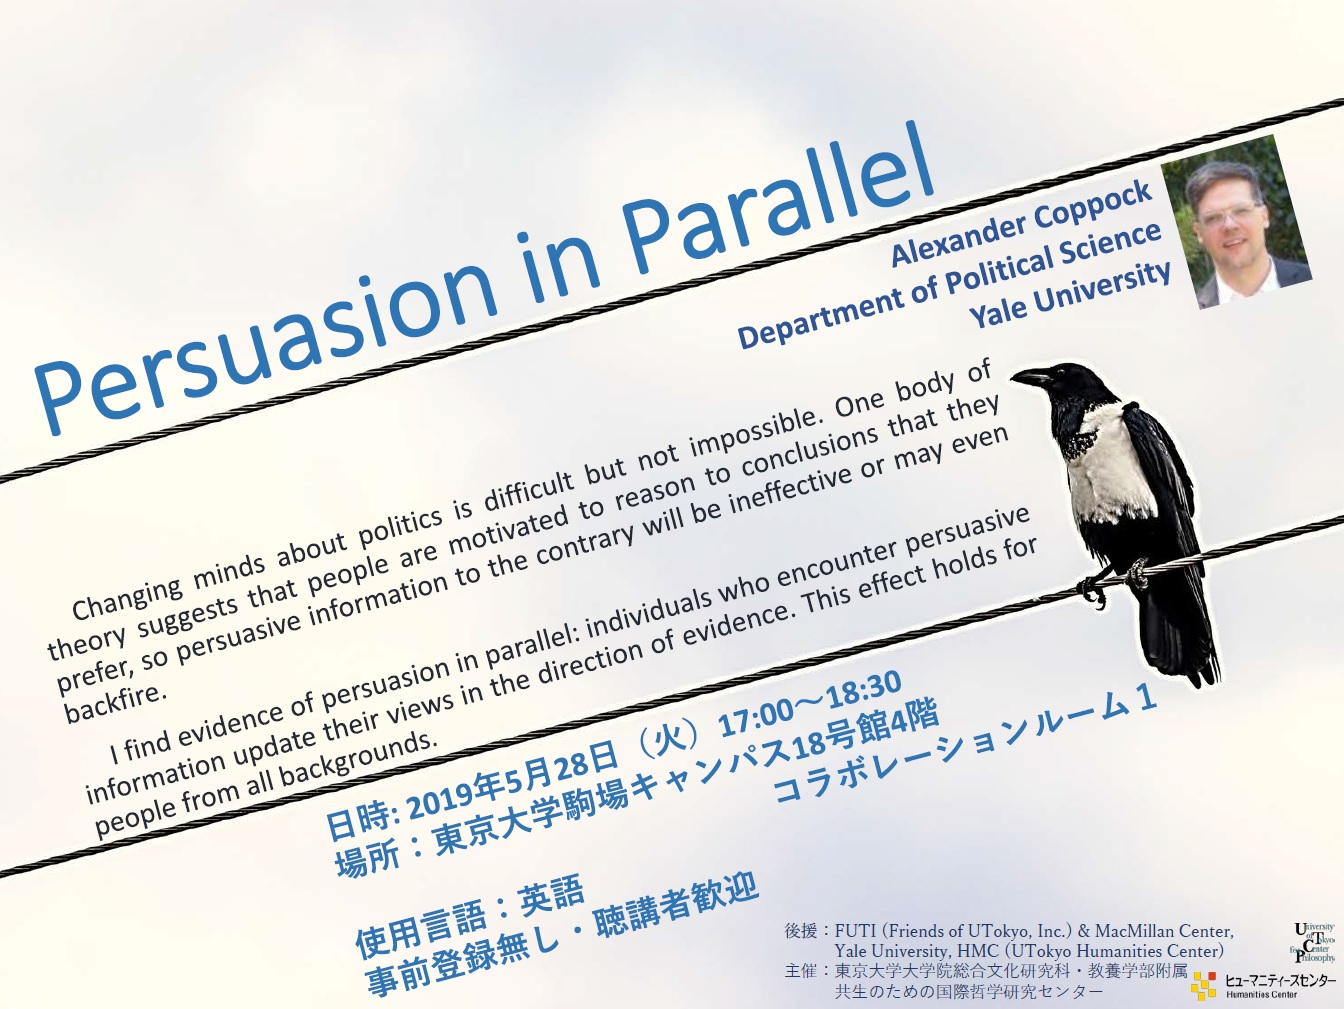 190528_Persuasion%20in%20Parallel_Poster.jpg